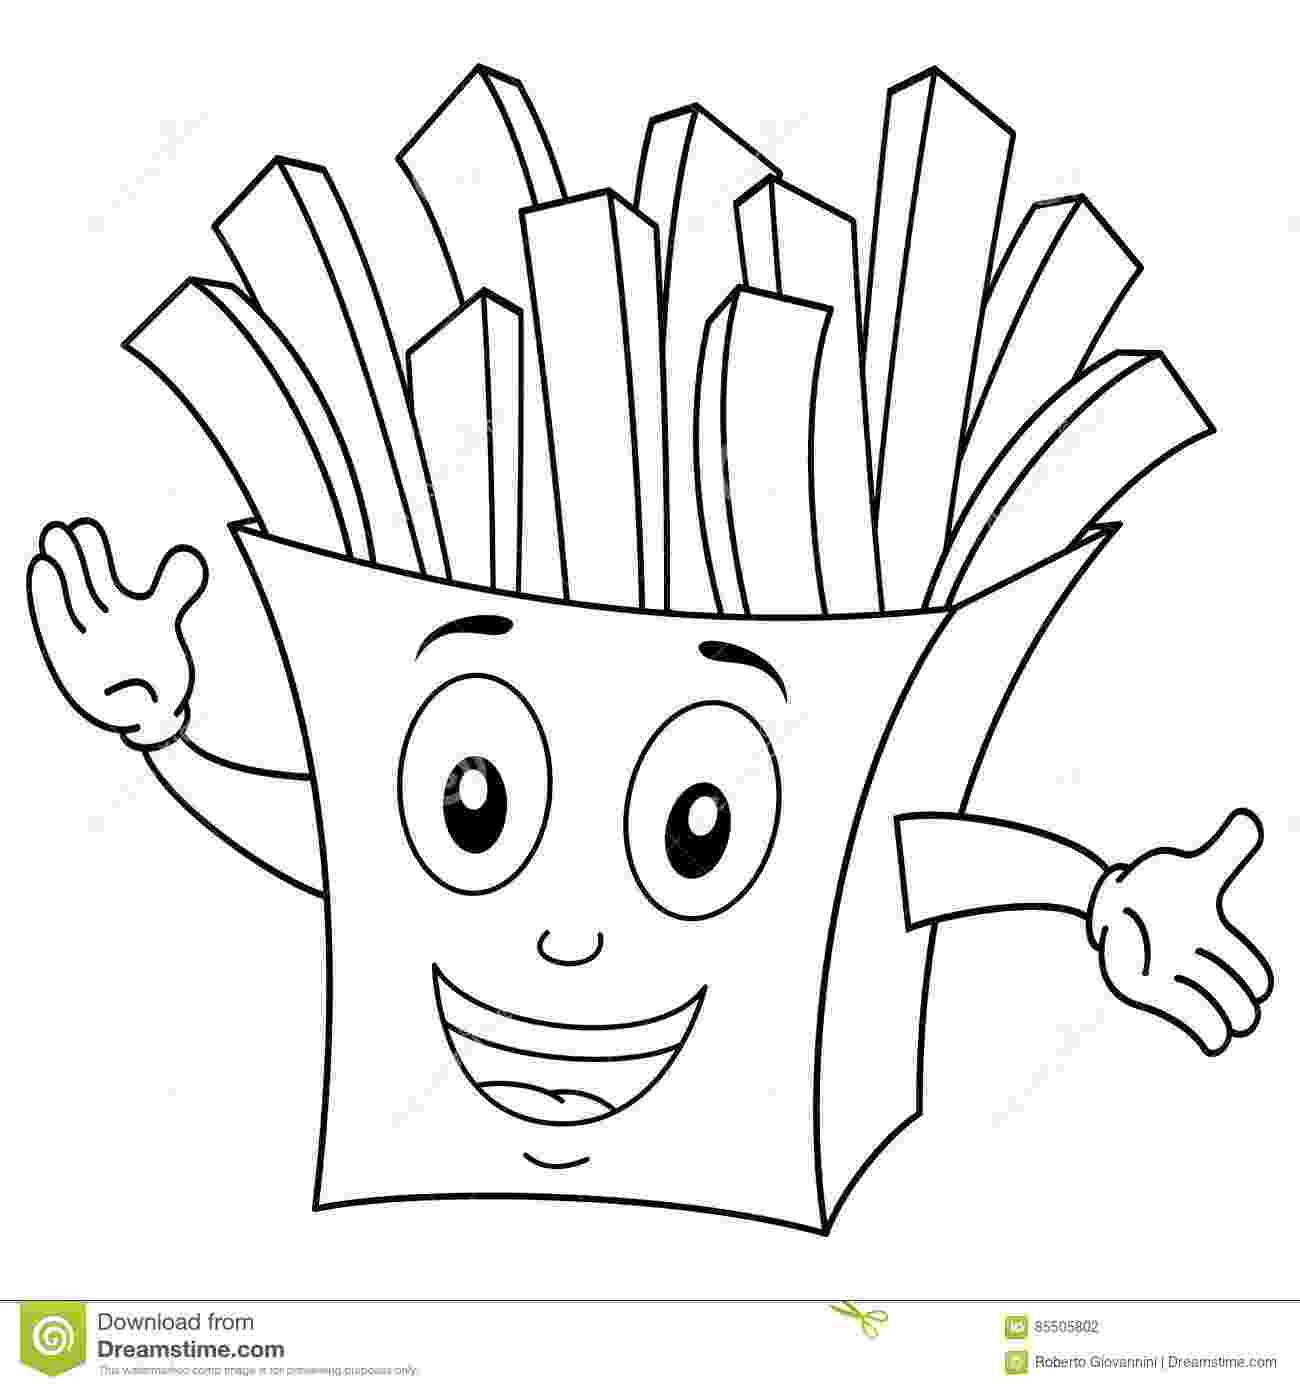 french fries coloring page 10 printable burger coloring pages for your little one fries page french coloring